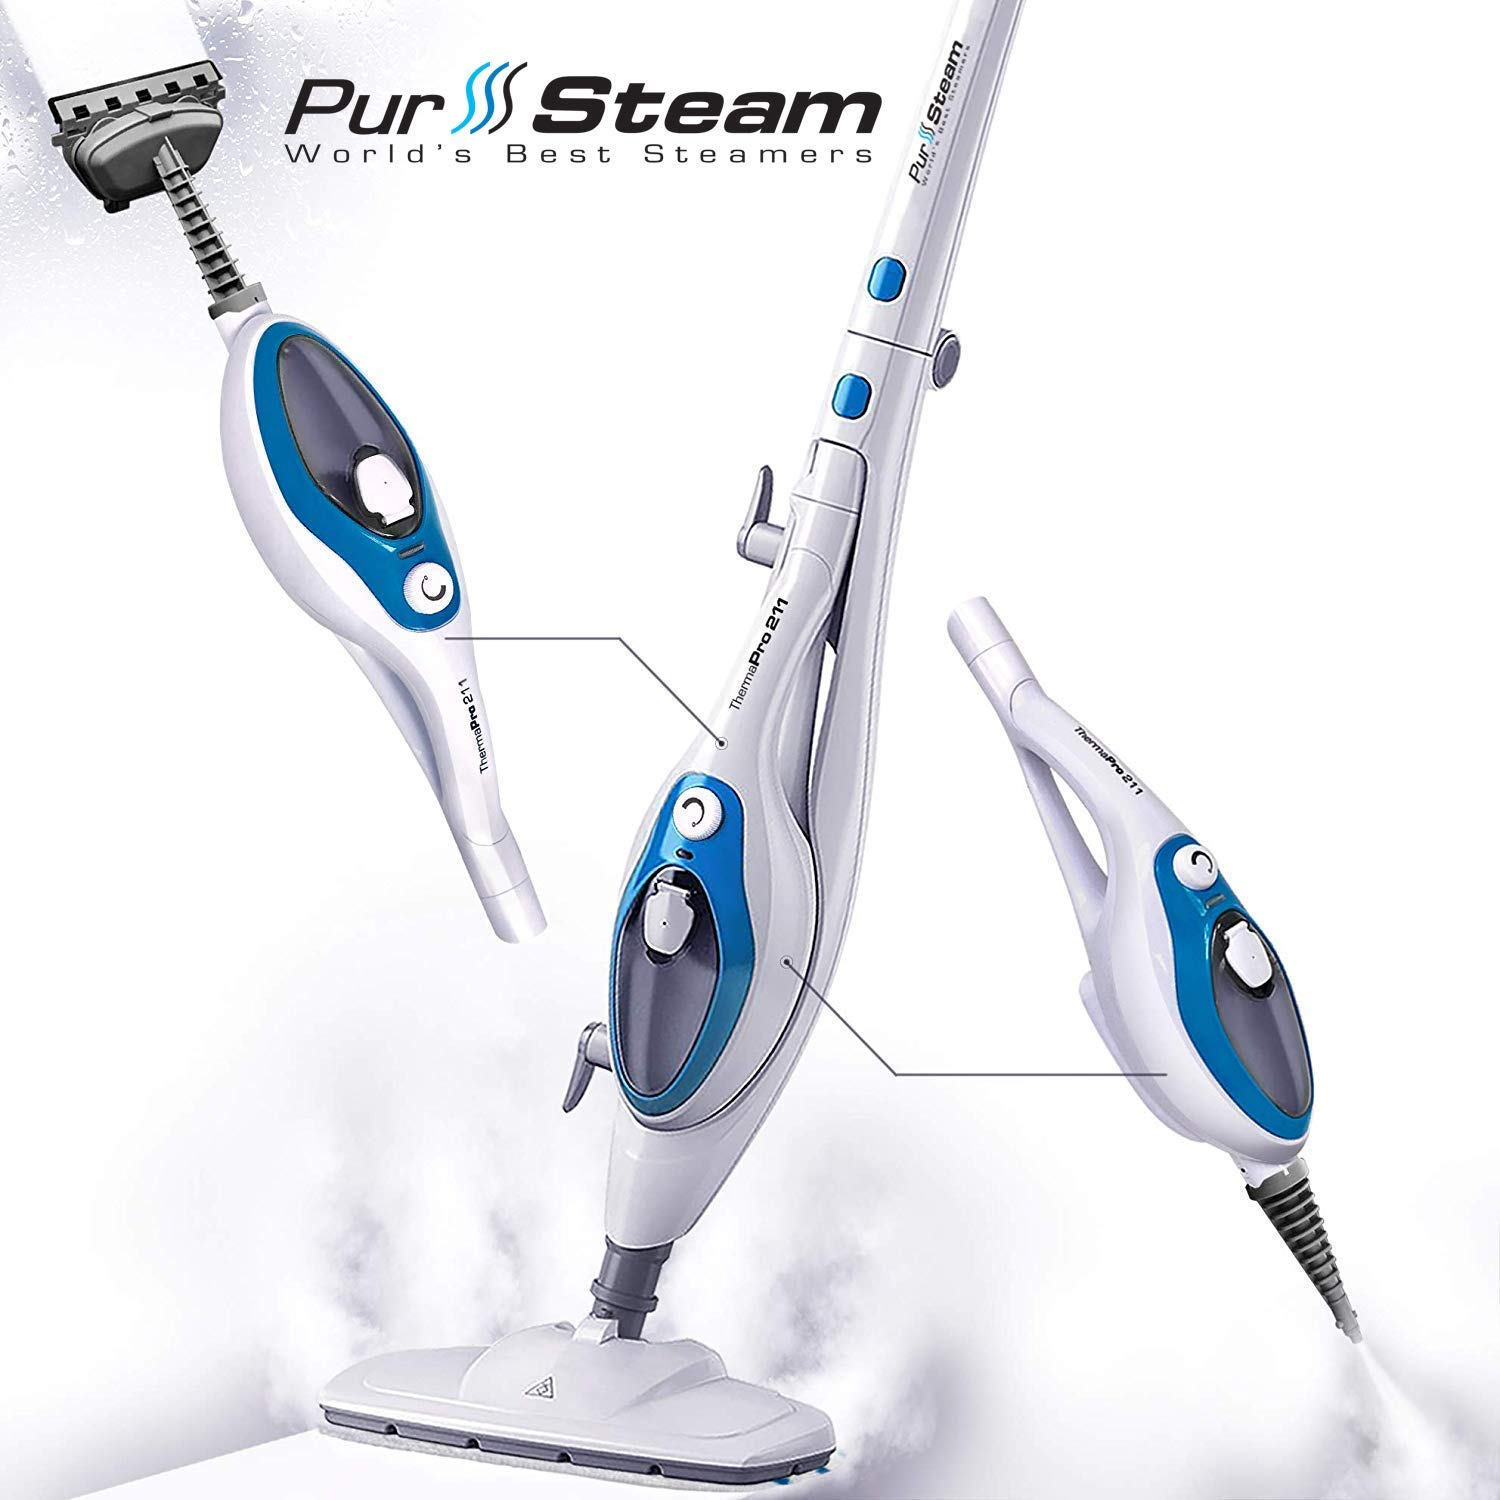 Steam Mop Cleaner ThermaPro 10-in-1 with Convenient Detachable Handheld Unit, Laminate/Hardwood/Tiles/Carpet Kitchen - Garment - Clothes - Pet Friendly Steamer Whole House Multipurpose Use by PurSteam by PurSteam World's Best Steamers